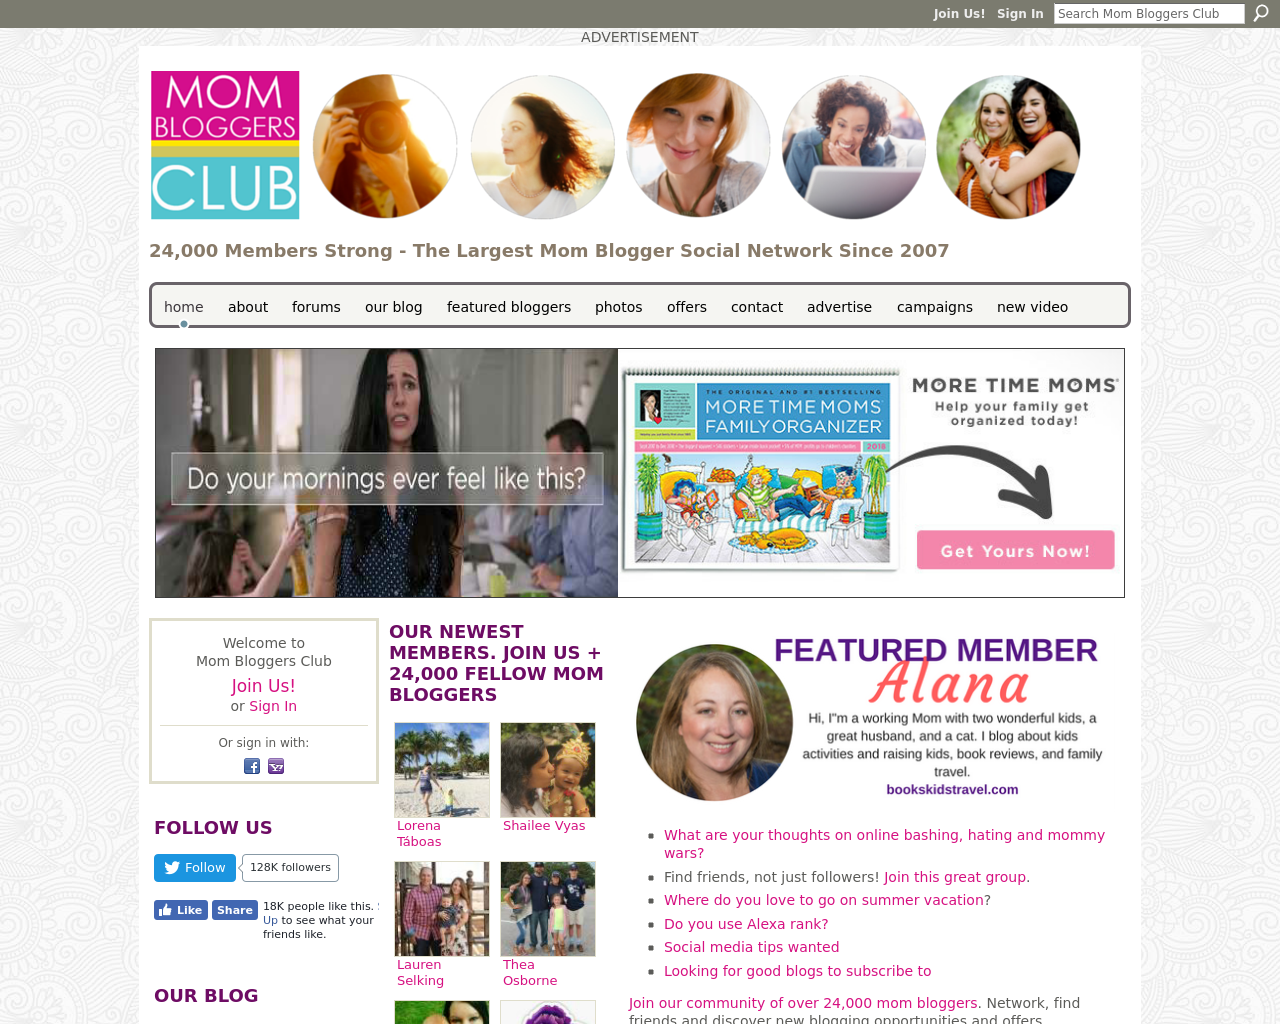 Mom-Bloggers-Club-Advertising-Reviews-Pricing